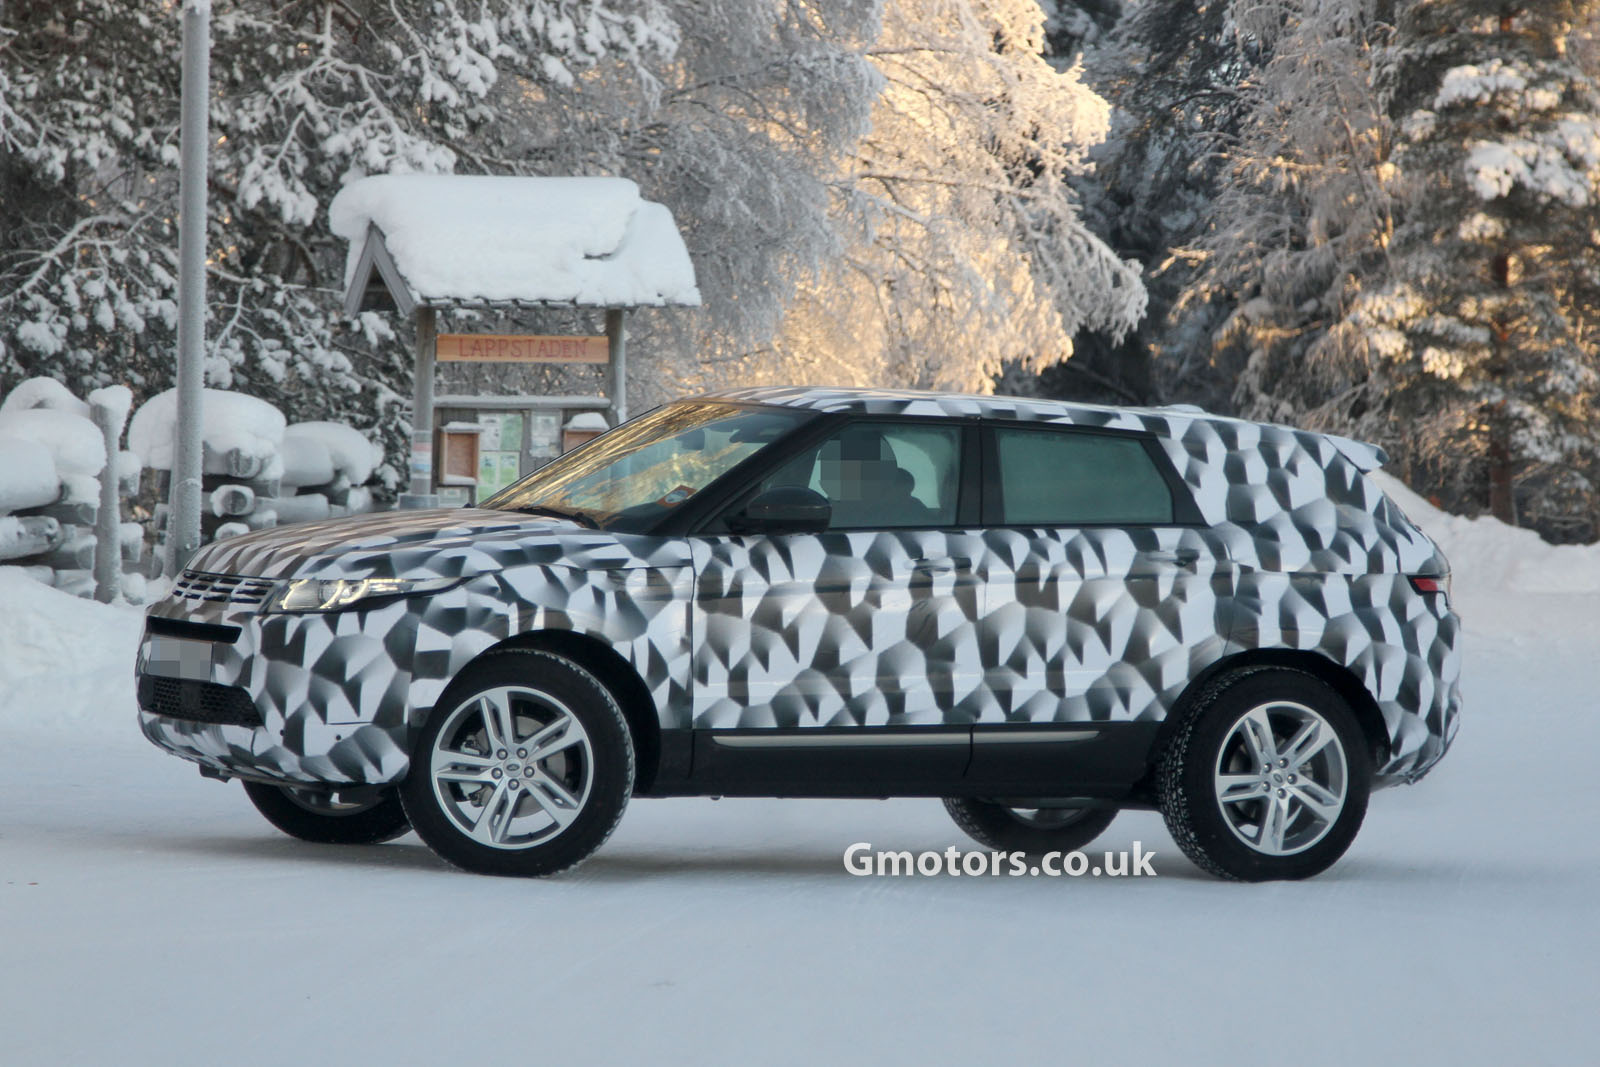 2015 Land Rover Freelander 3 prototype